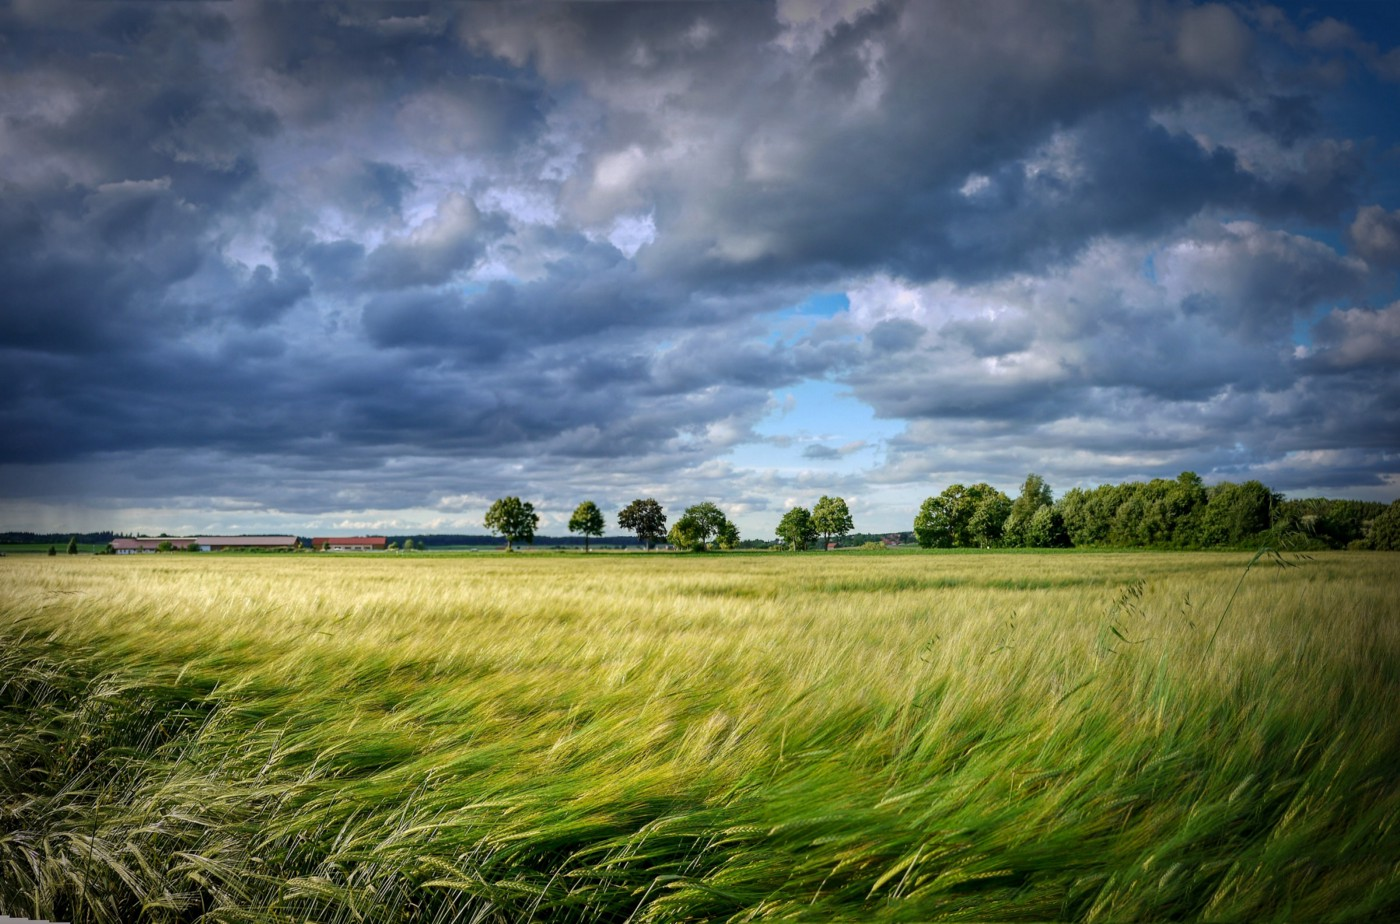 Wind-blown field of green grain under busy cloudy sky with a line of trees in distance.